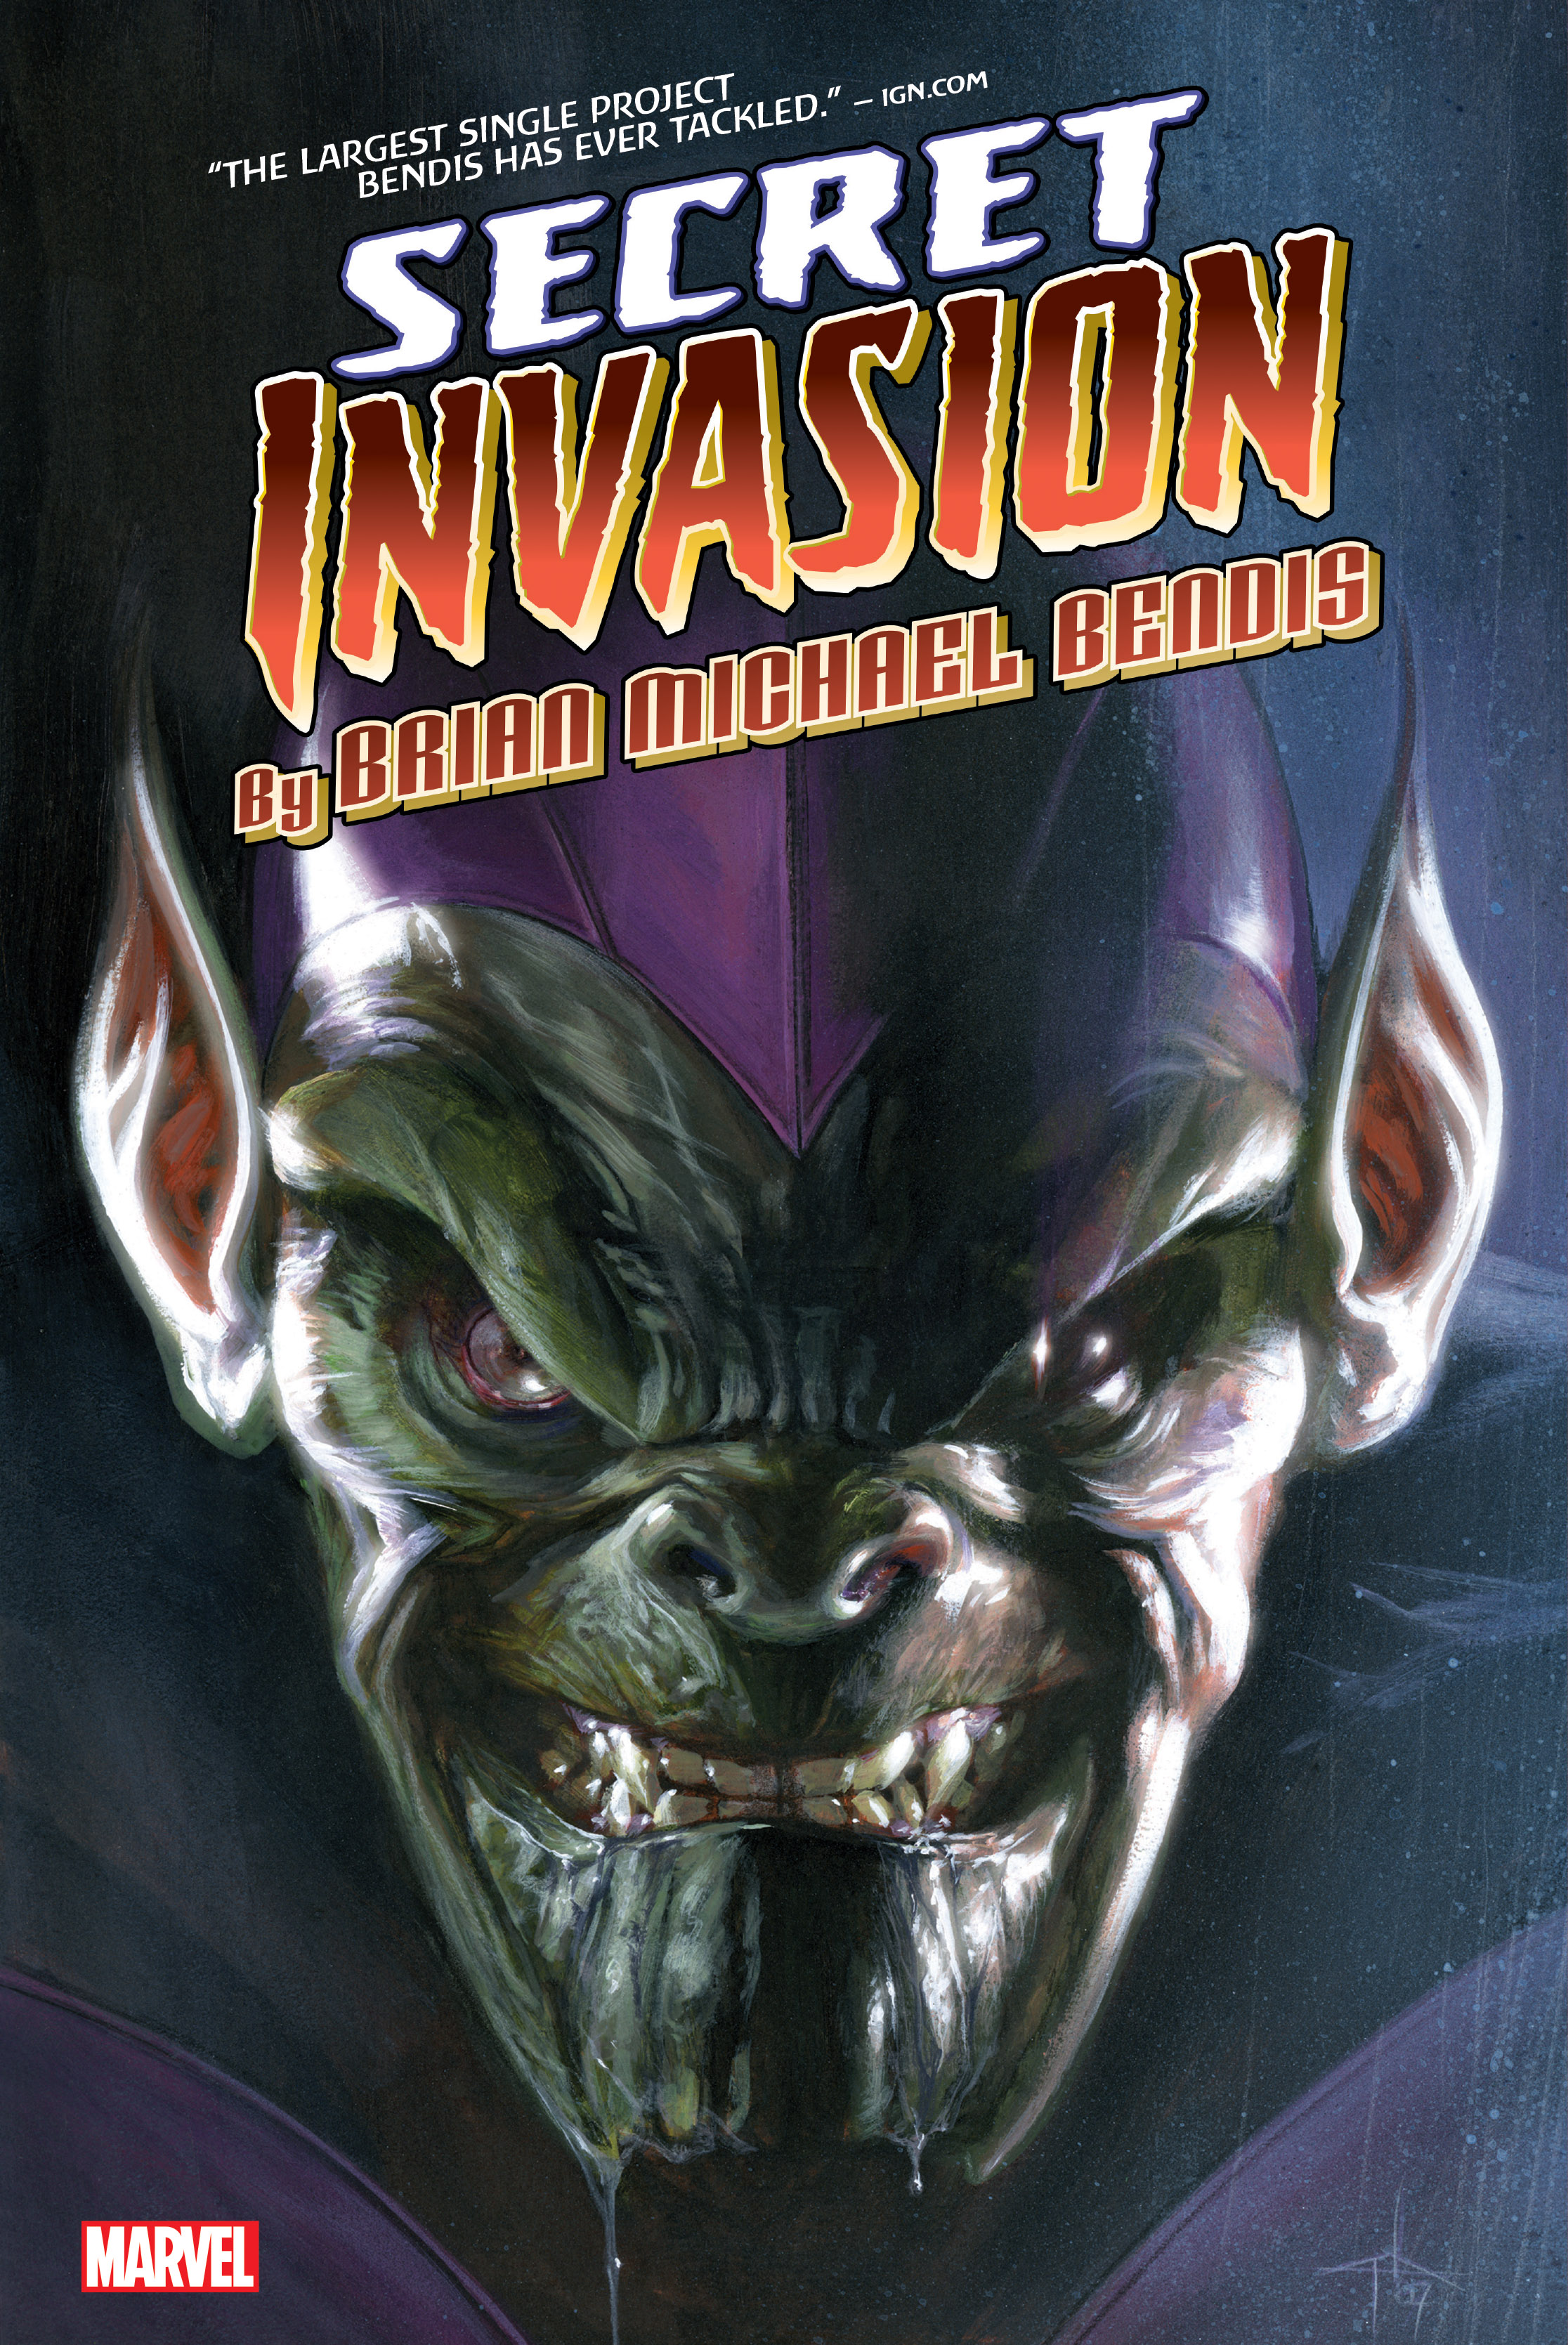 Secret Invasion By Brian Michael Bendis Omnibus (Hardcover)